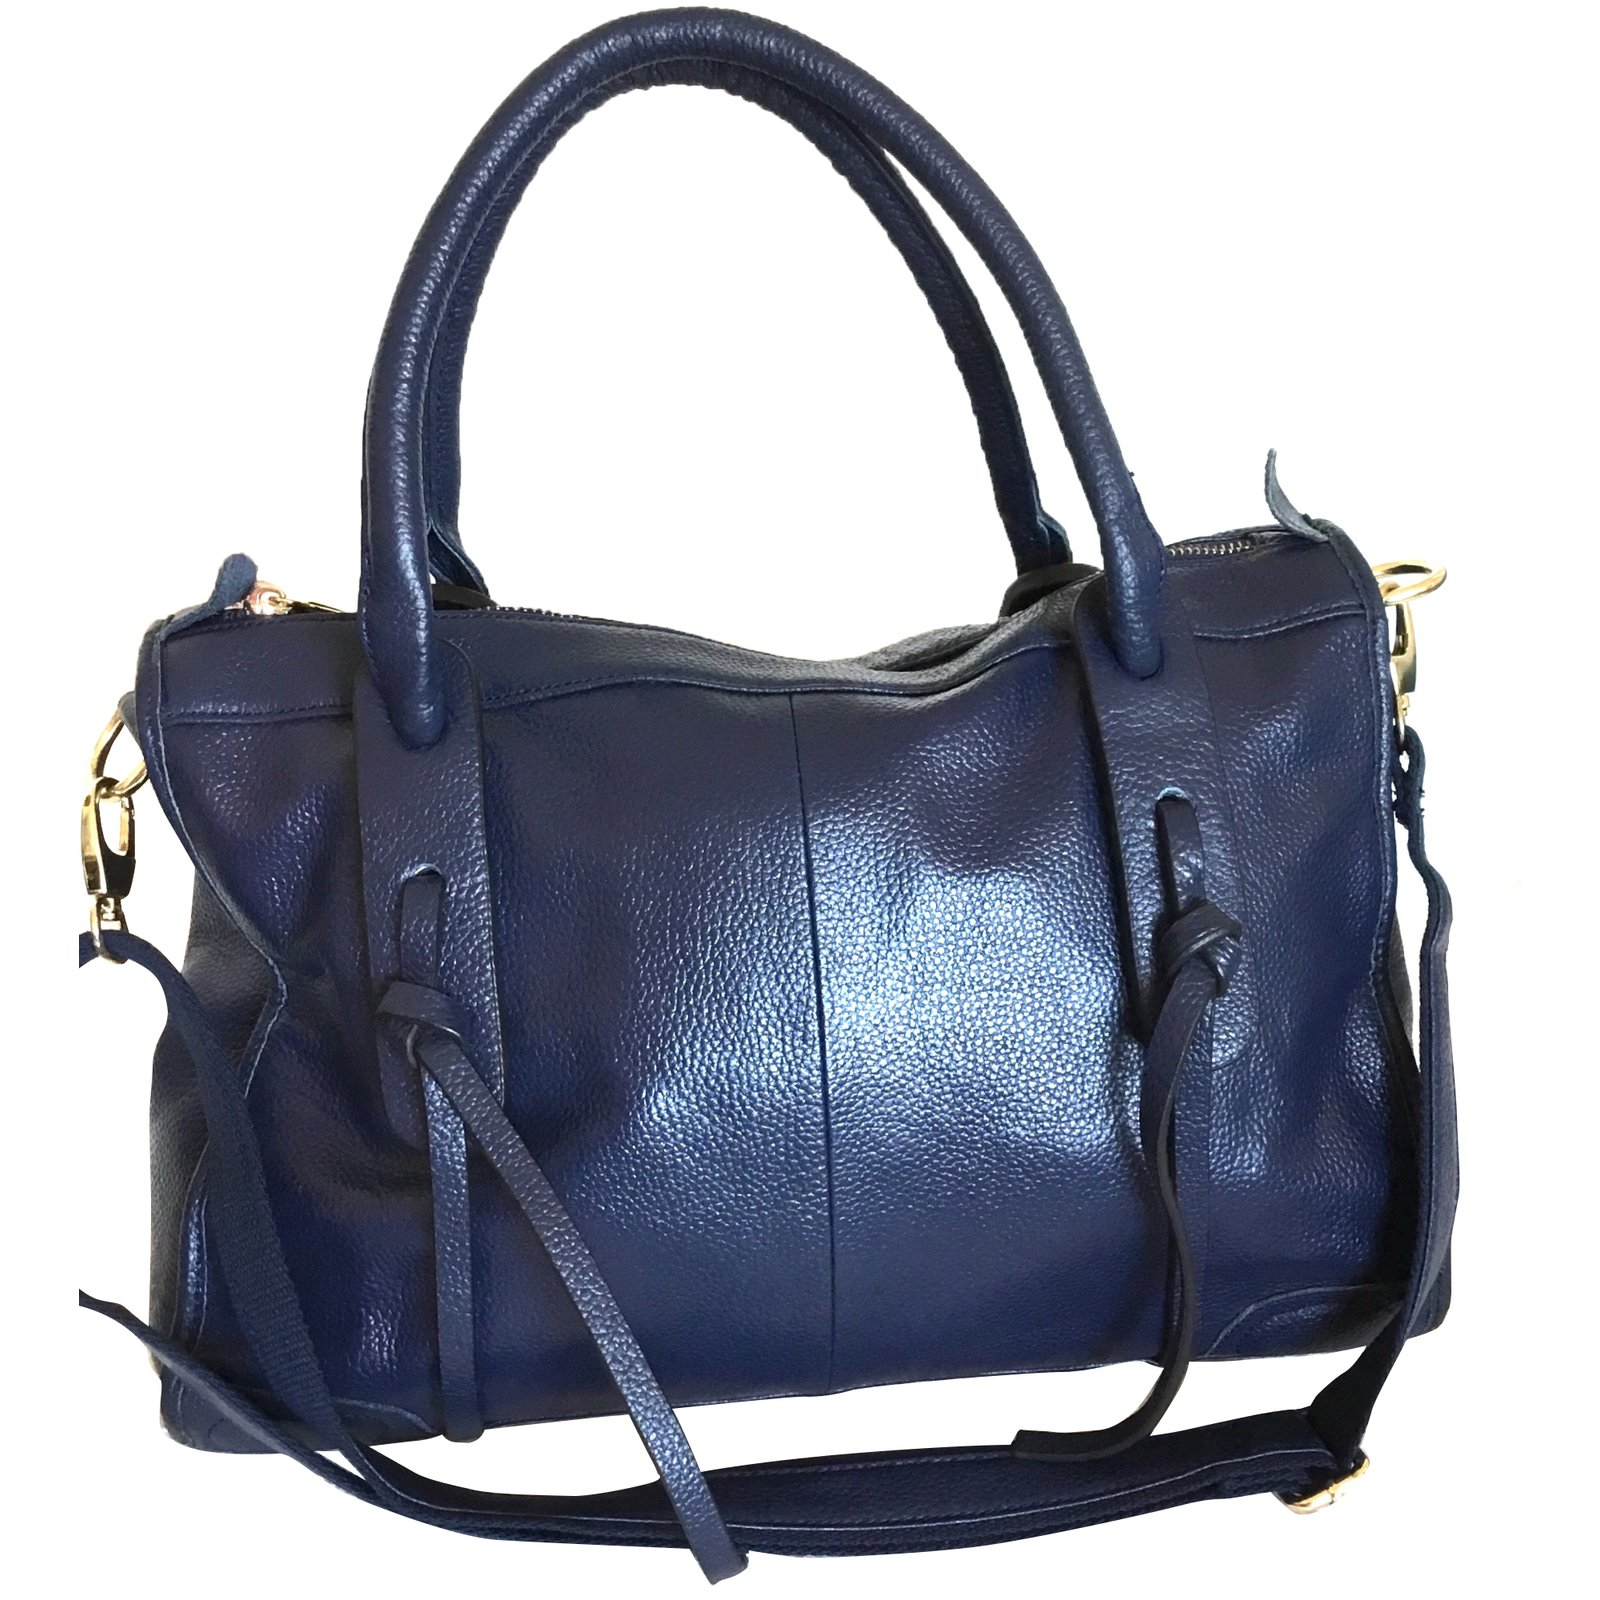 Georges Rech Handbag Handbags Leather Navy Blue Ref 74543